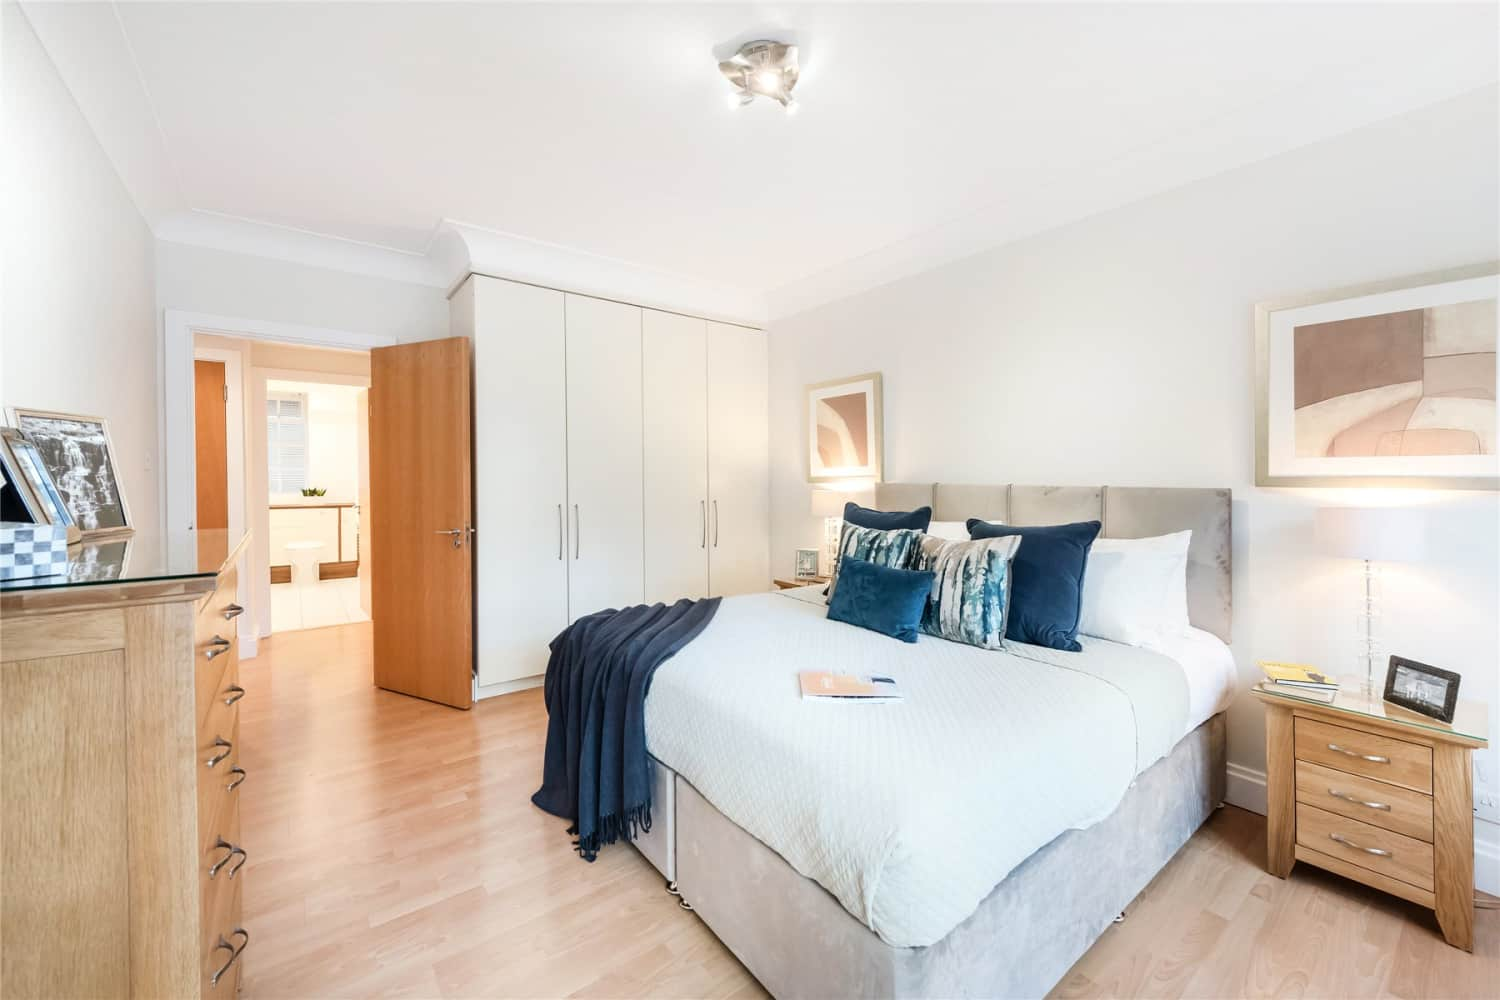 Apartment London, W8 - Stafford Court Kensington High Street London W8 - 01